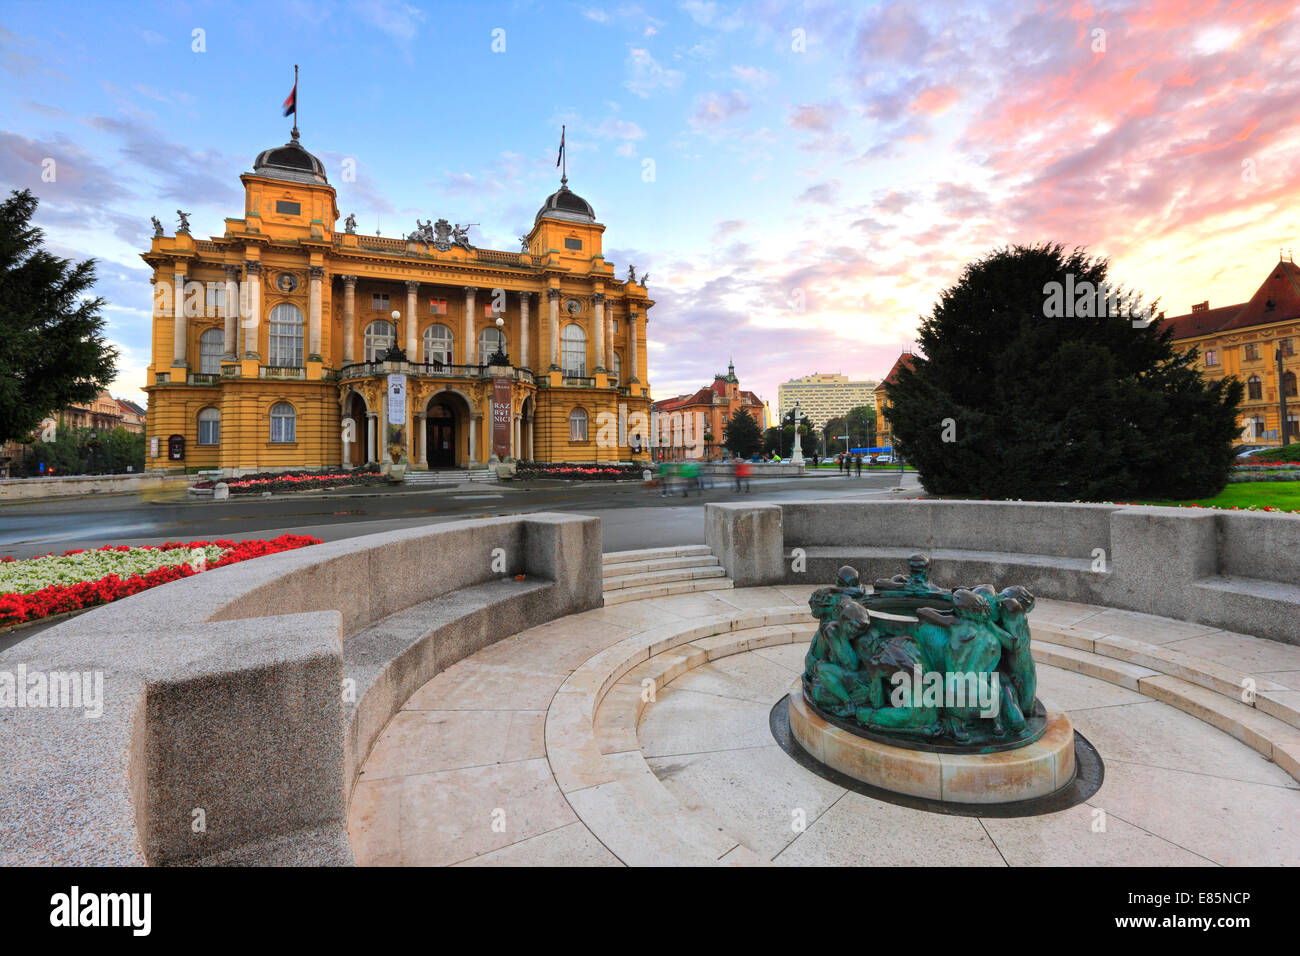 Zagreb, Nationaltheater im Sonnenuntergang. Stockbild